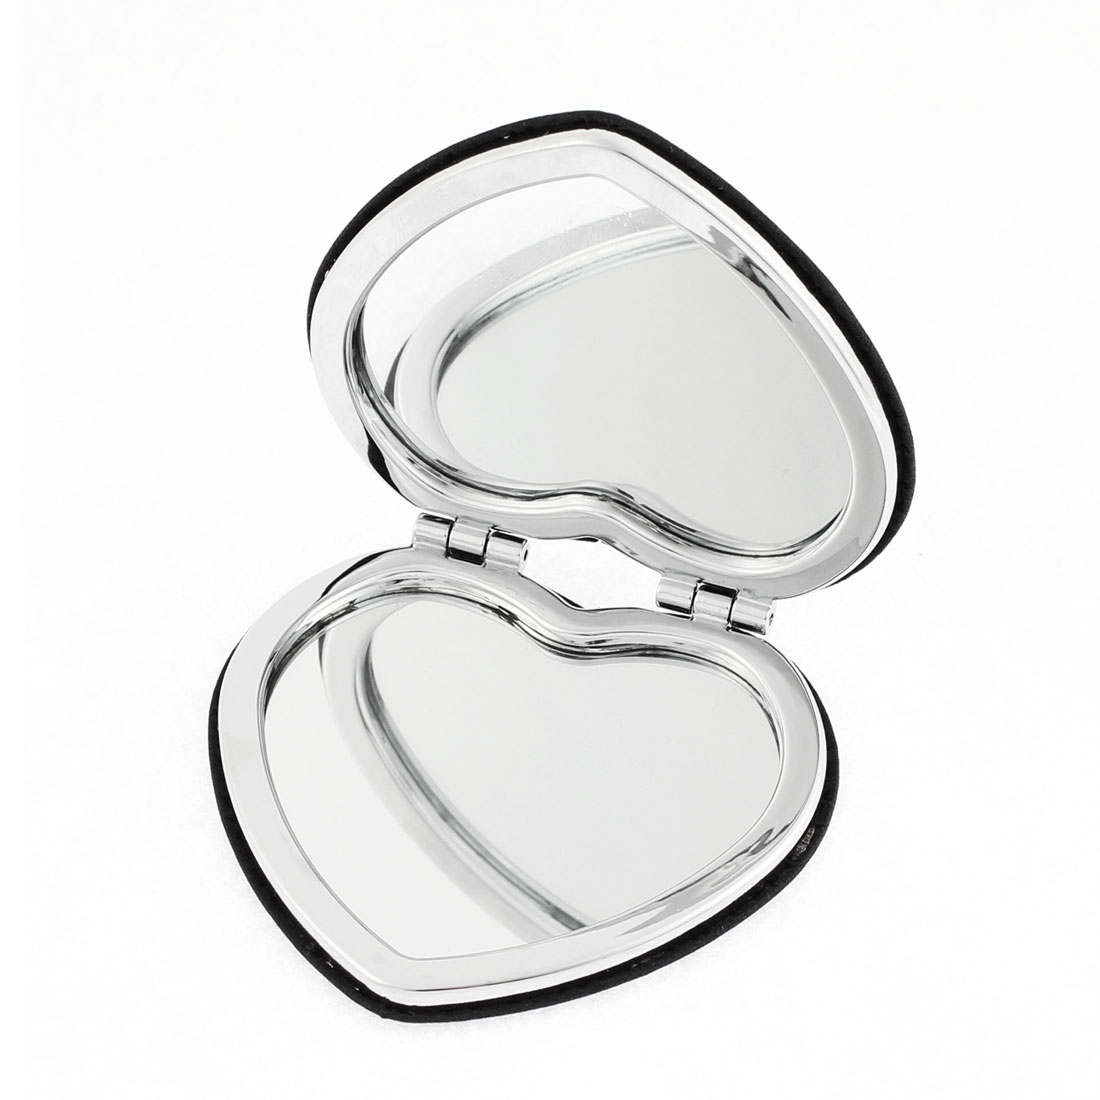 Heart Shaped Flower Detail Folding Cosmetic Compact Mirror Makeup Tool Black